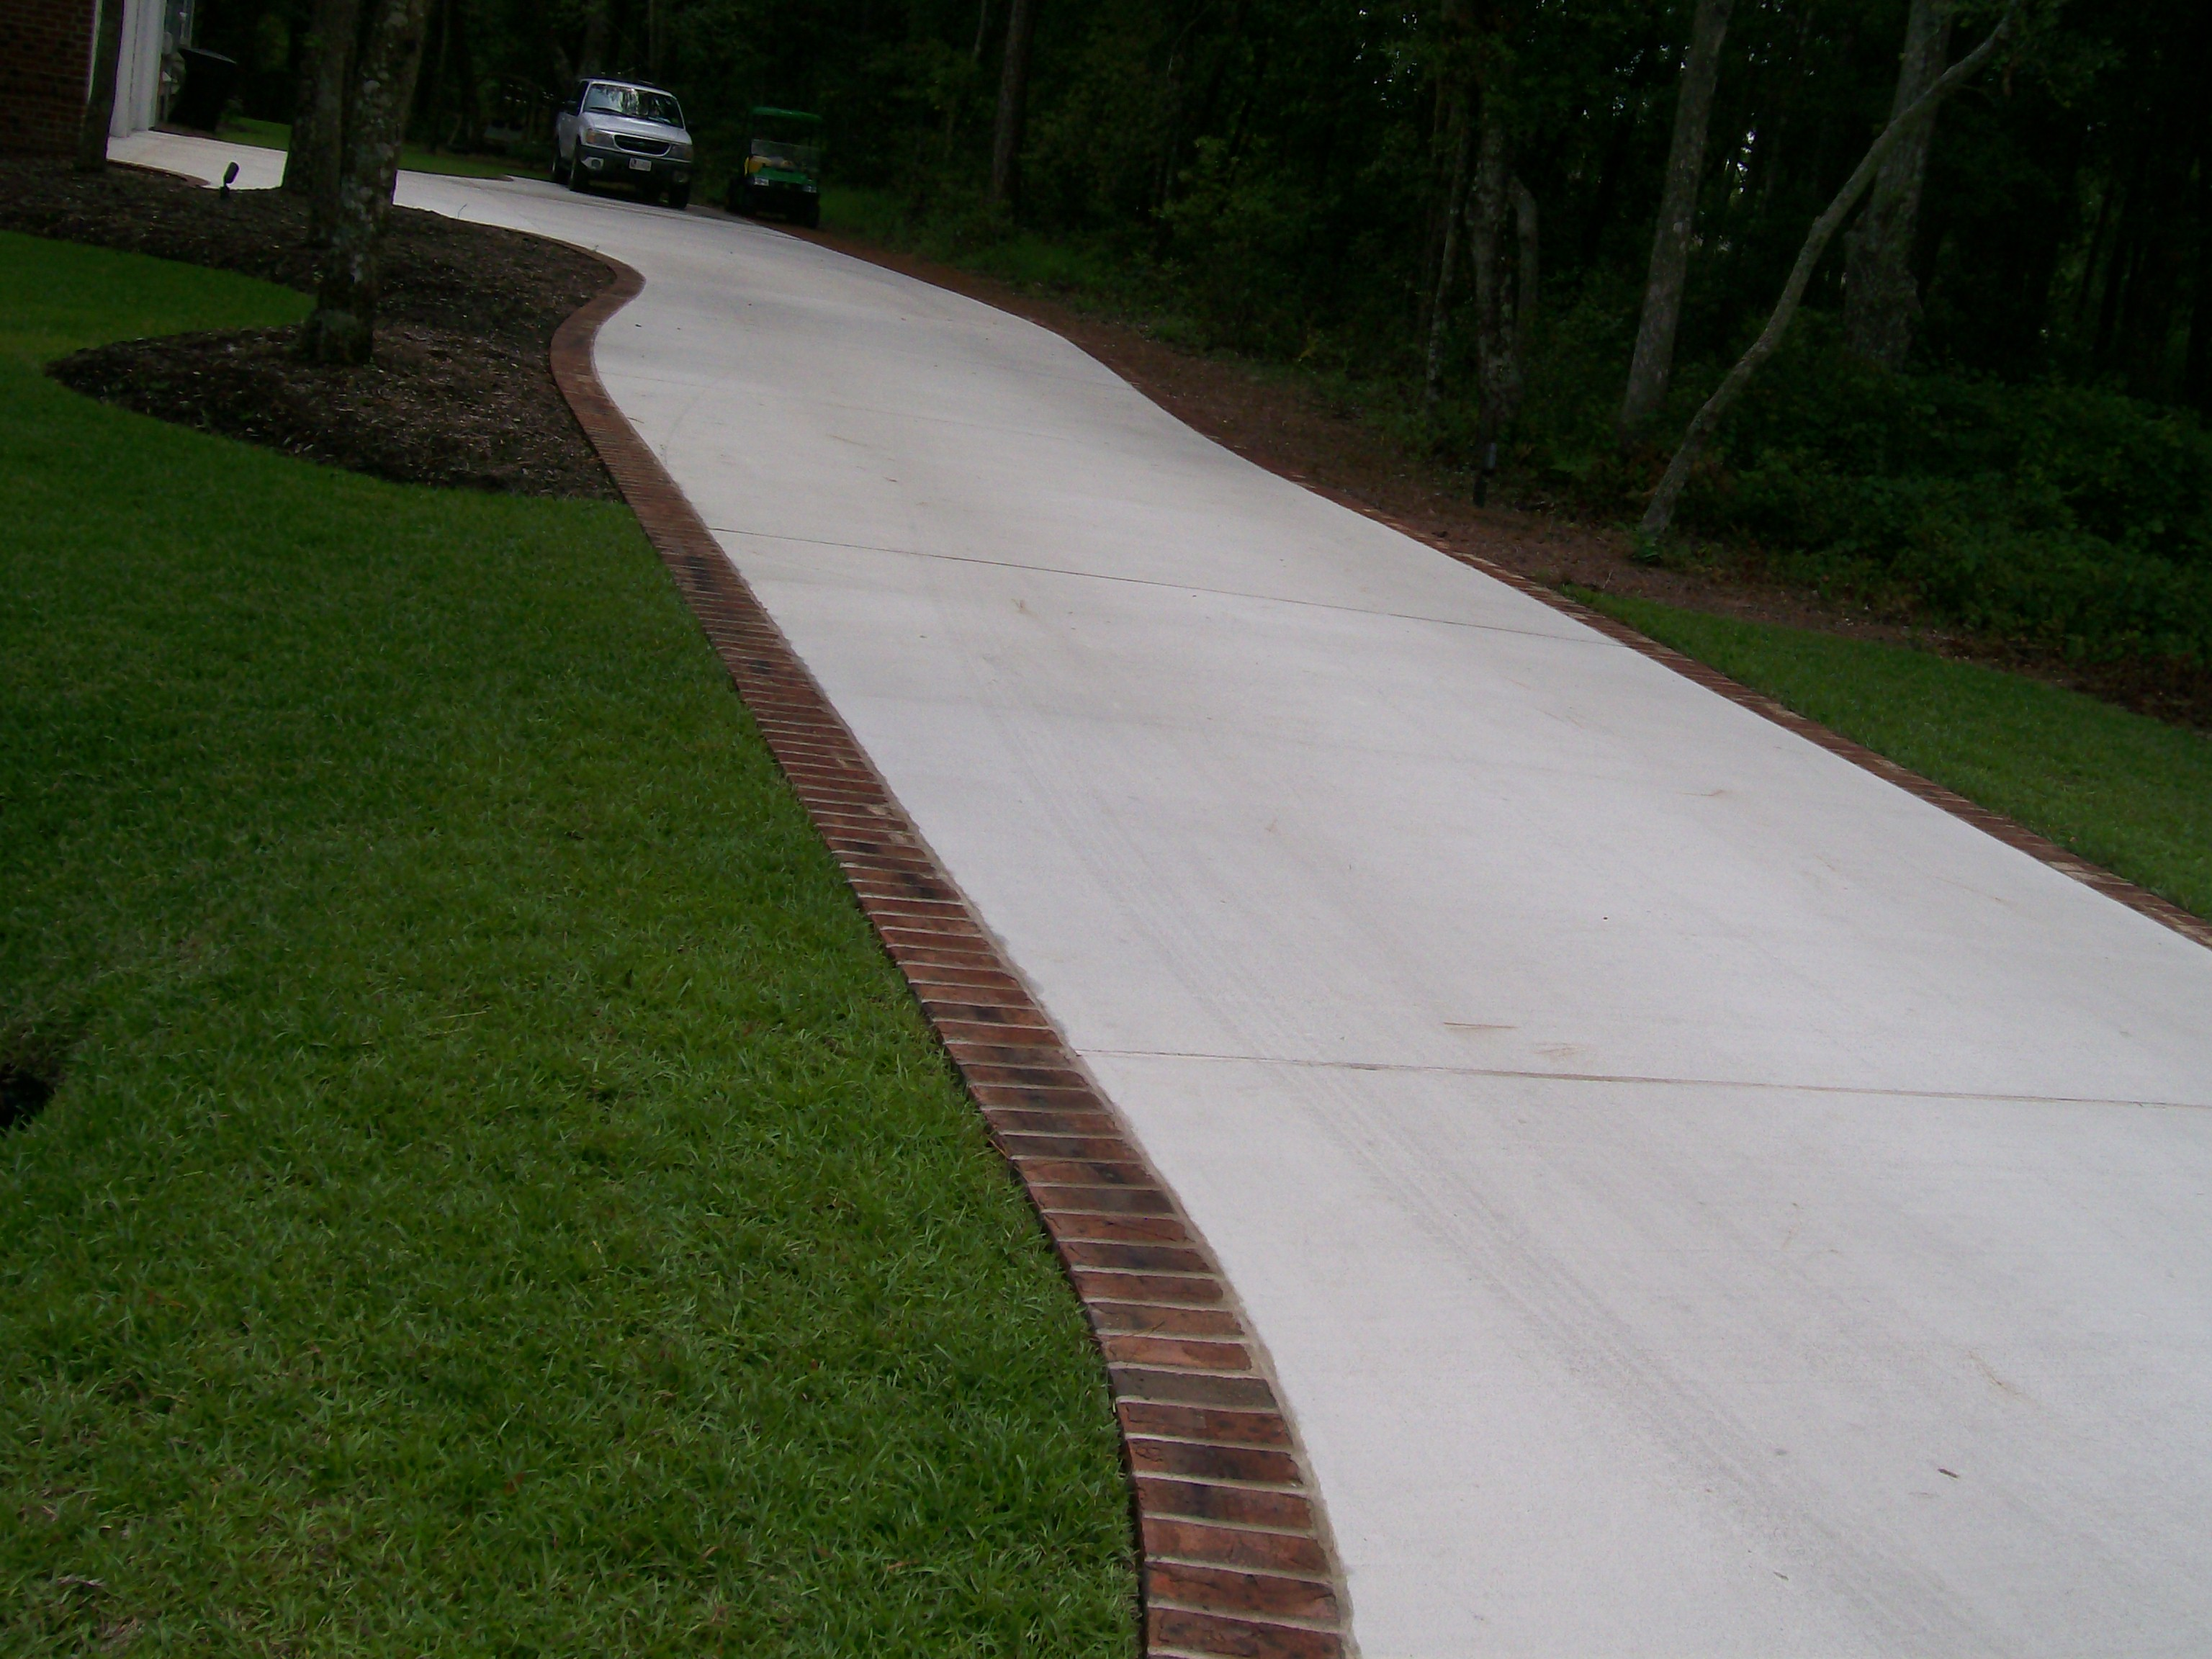 Broom finish paver border driveway and sidewalks for Brick sidewalk edging